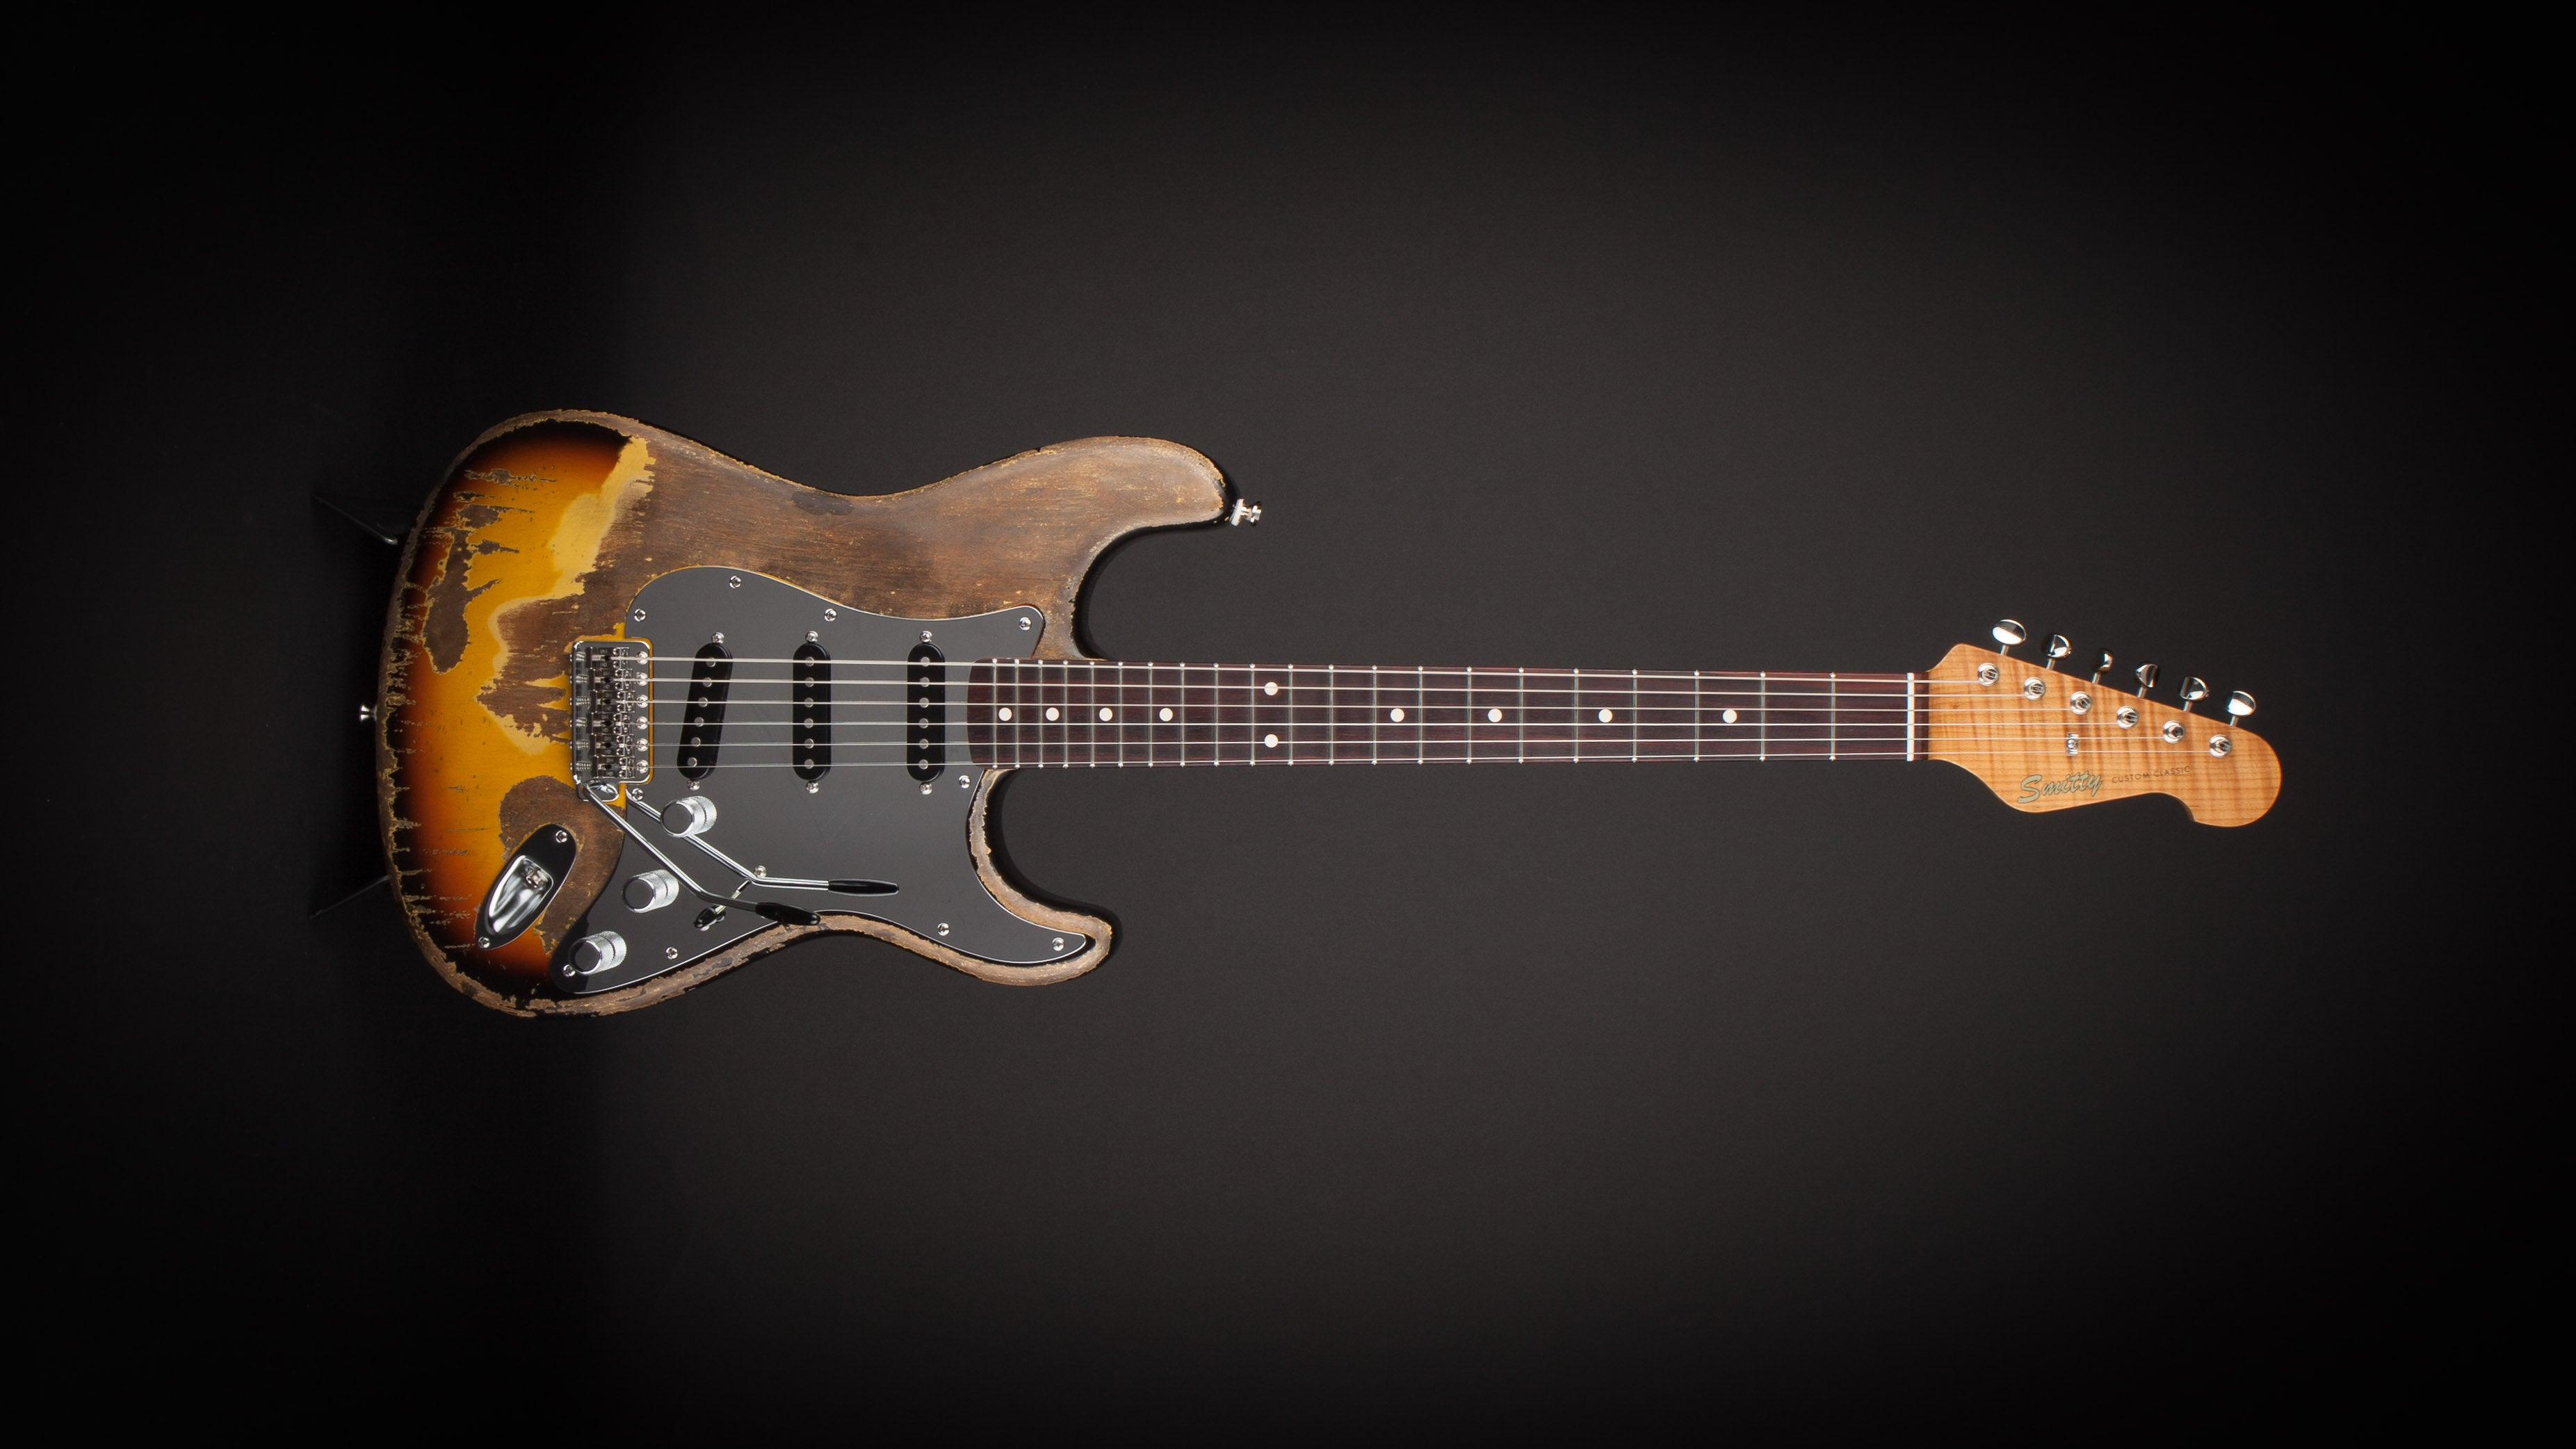 Smitty Guitars HZ Inspired Classic S with Mastergrade Roasted Flame Maple Neck